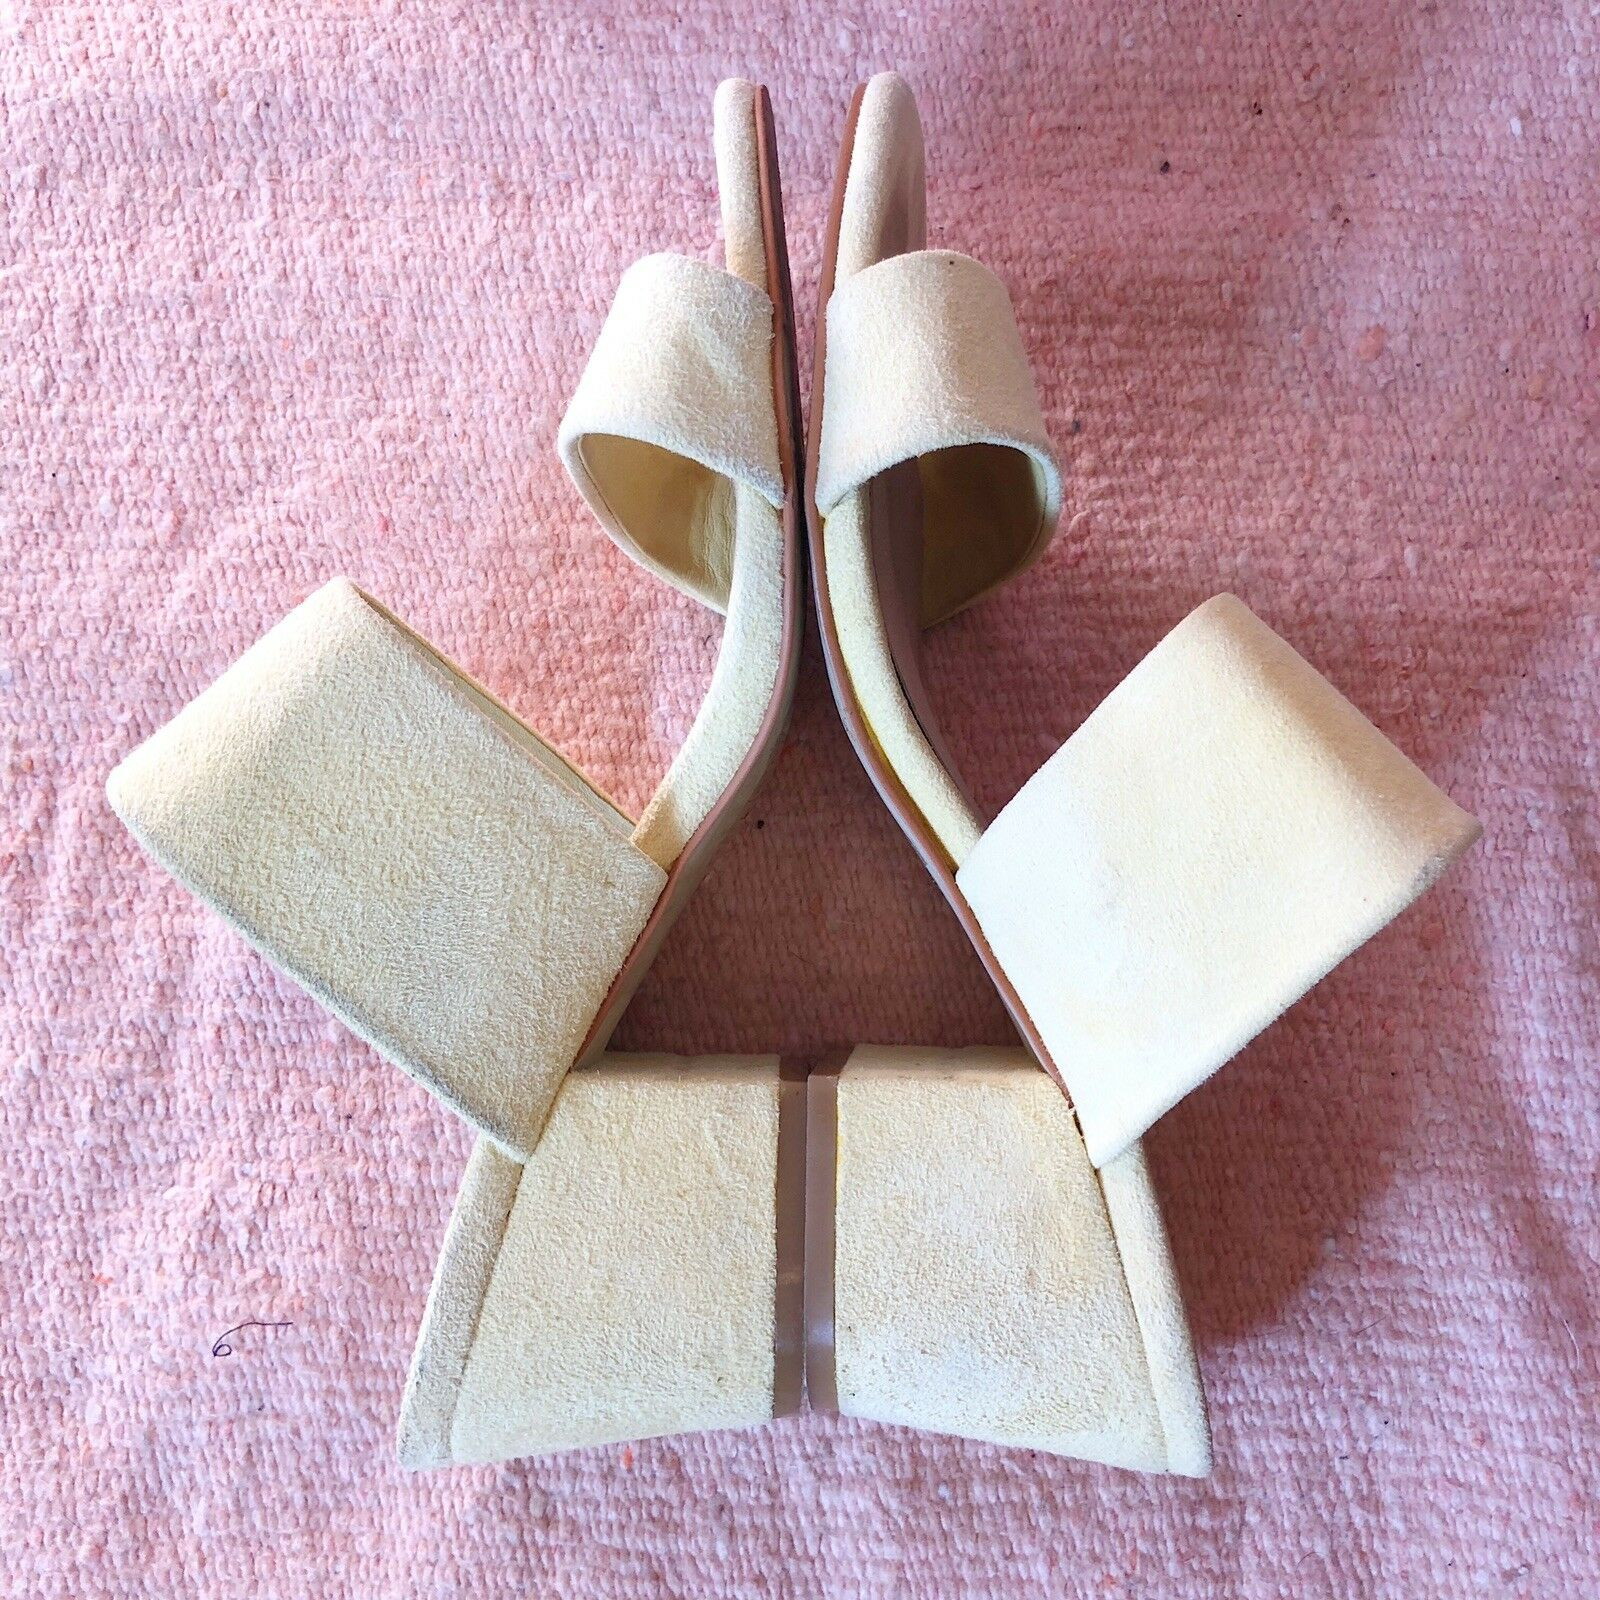 Sol Sana Butter Yellow Suede Mules - image 3